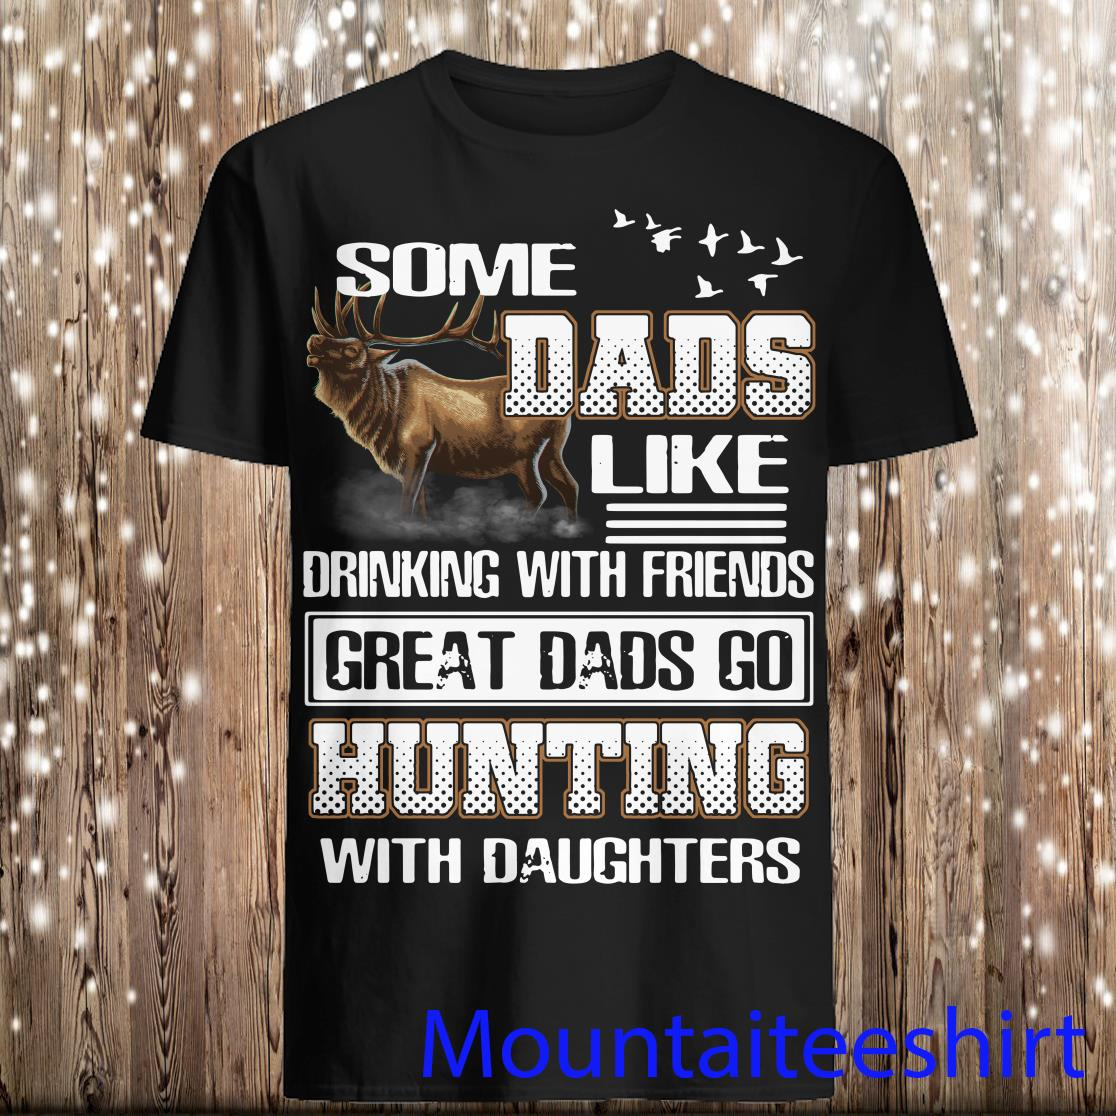 Great Dads Go Hunting with Daughters Shirt